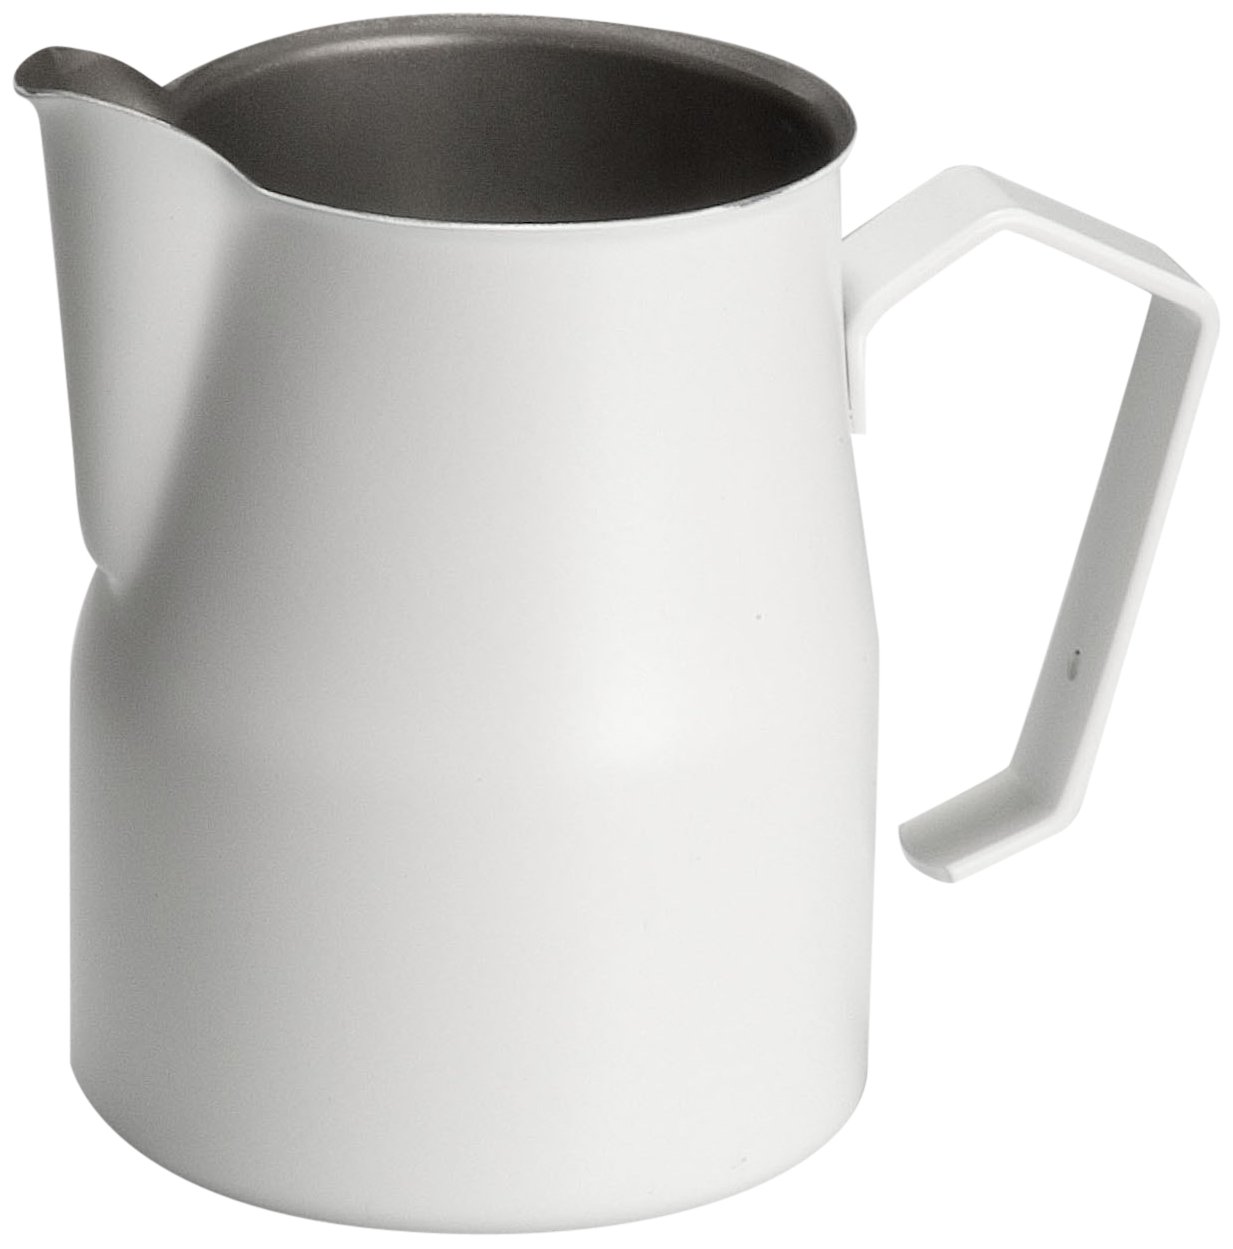 Motta Stainless Steel Coated Frothing Pitcher, 25.4 Fluid Ounce, White by Metallurgica Motta